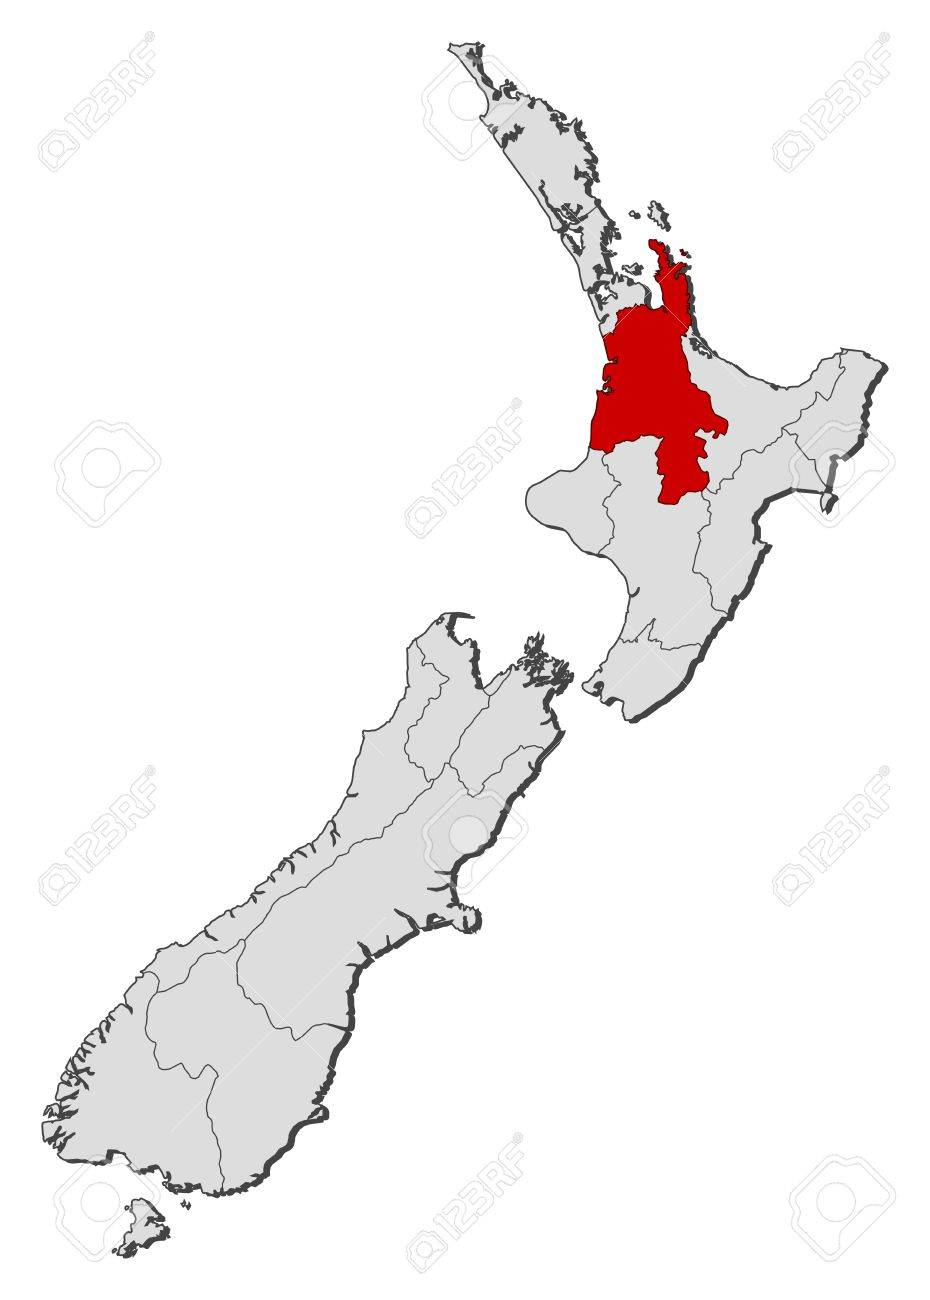 Waikato New Zealand Map.Political Map Of New Zealand With The Several Regions Where Waikato